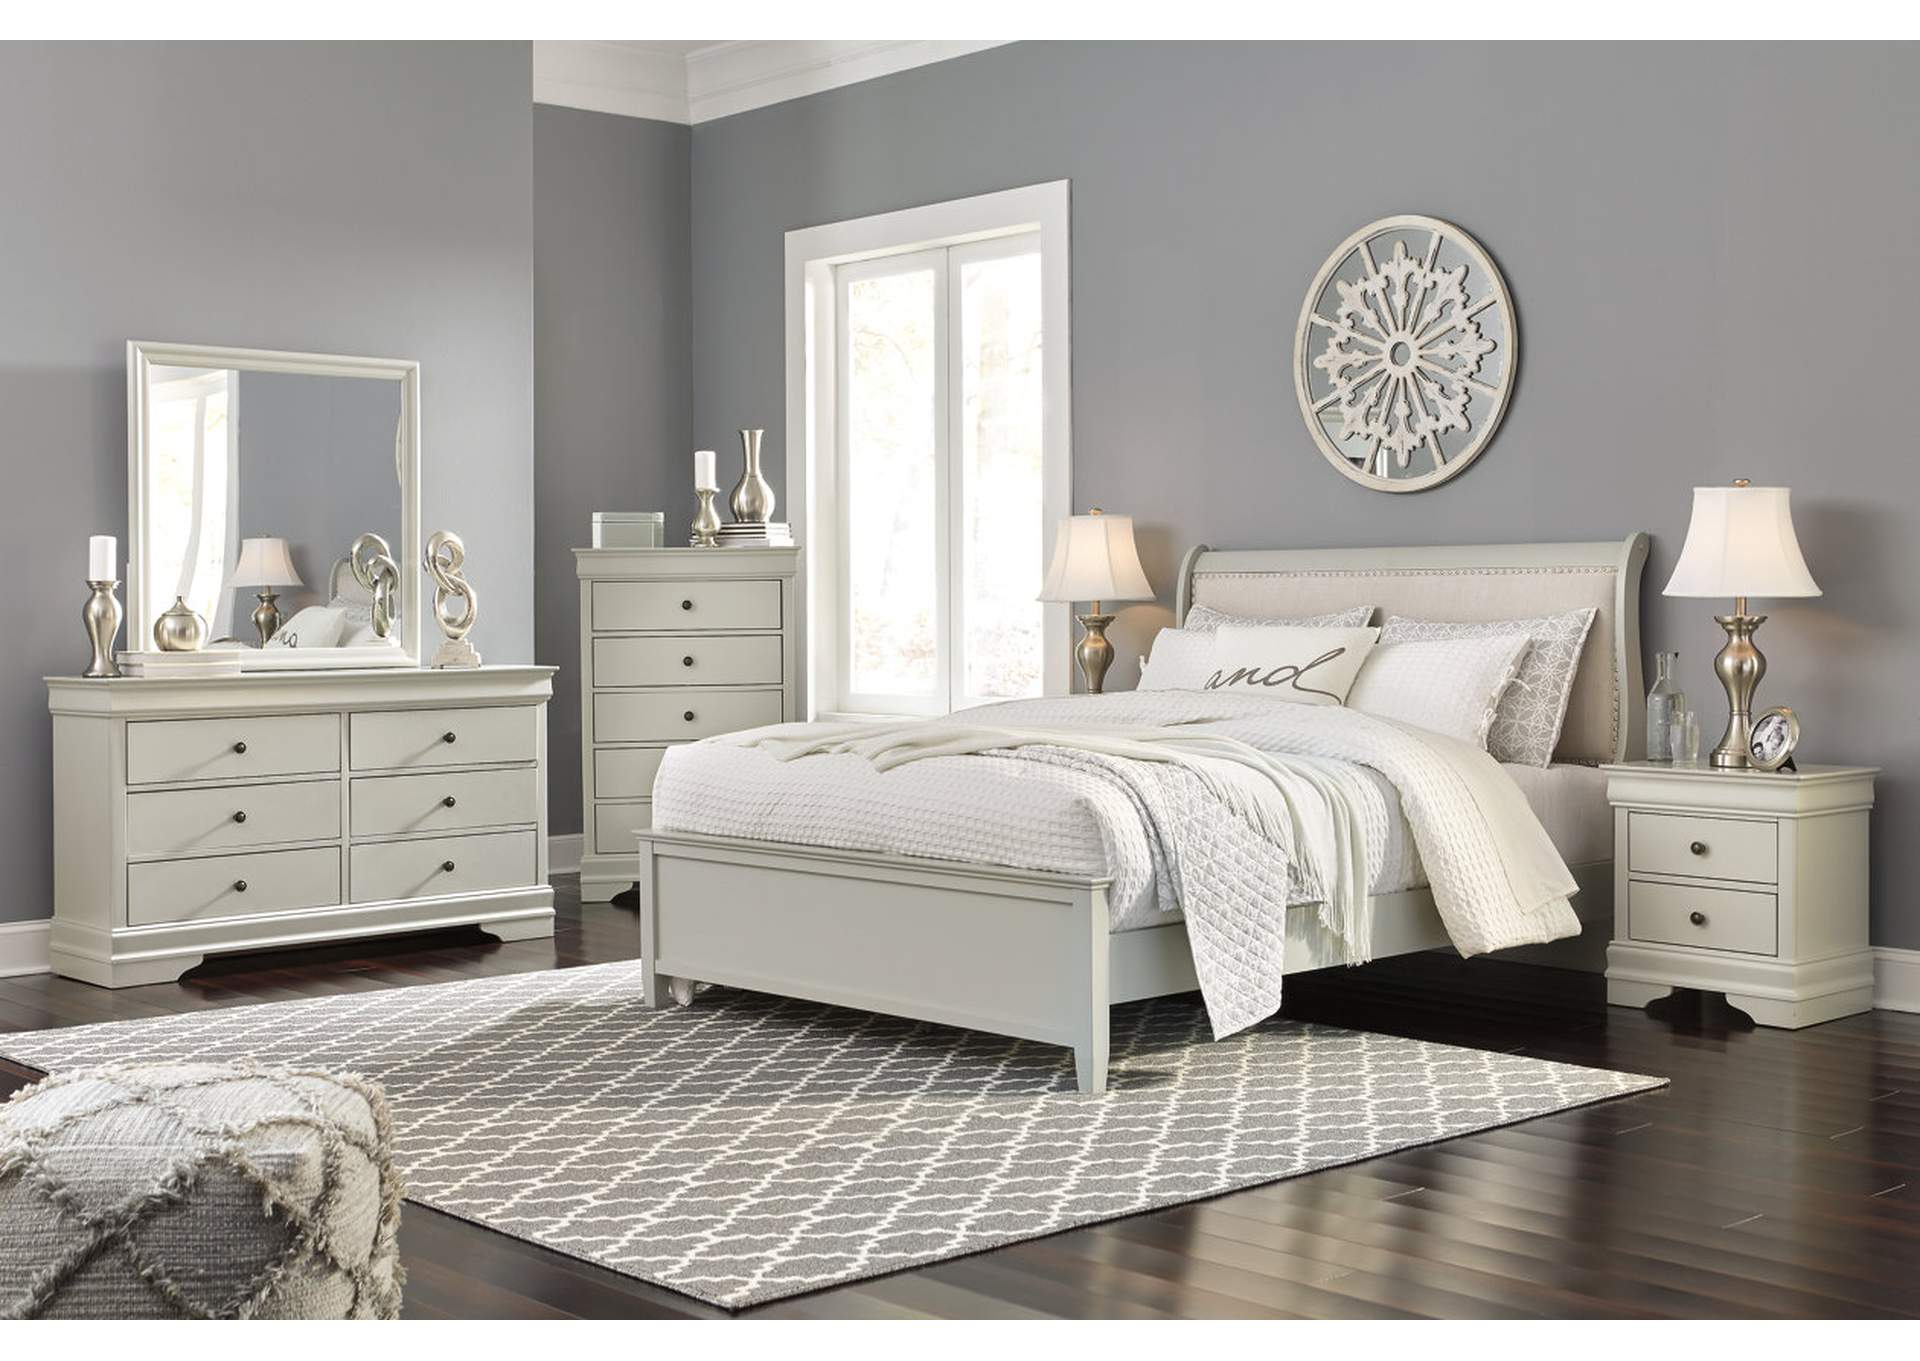 Jorstad Gray Upholstered Sleigh King Bed w/Dresser & Mirror,Signature Design By Ashley